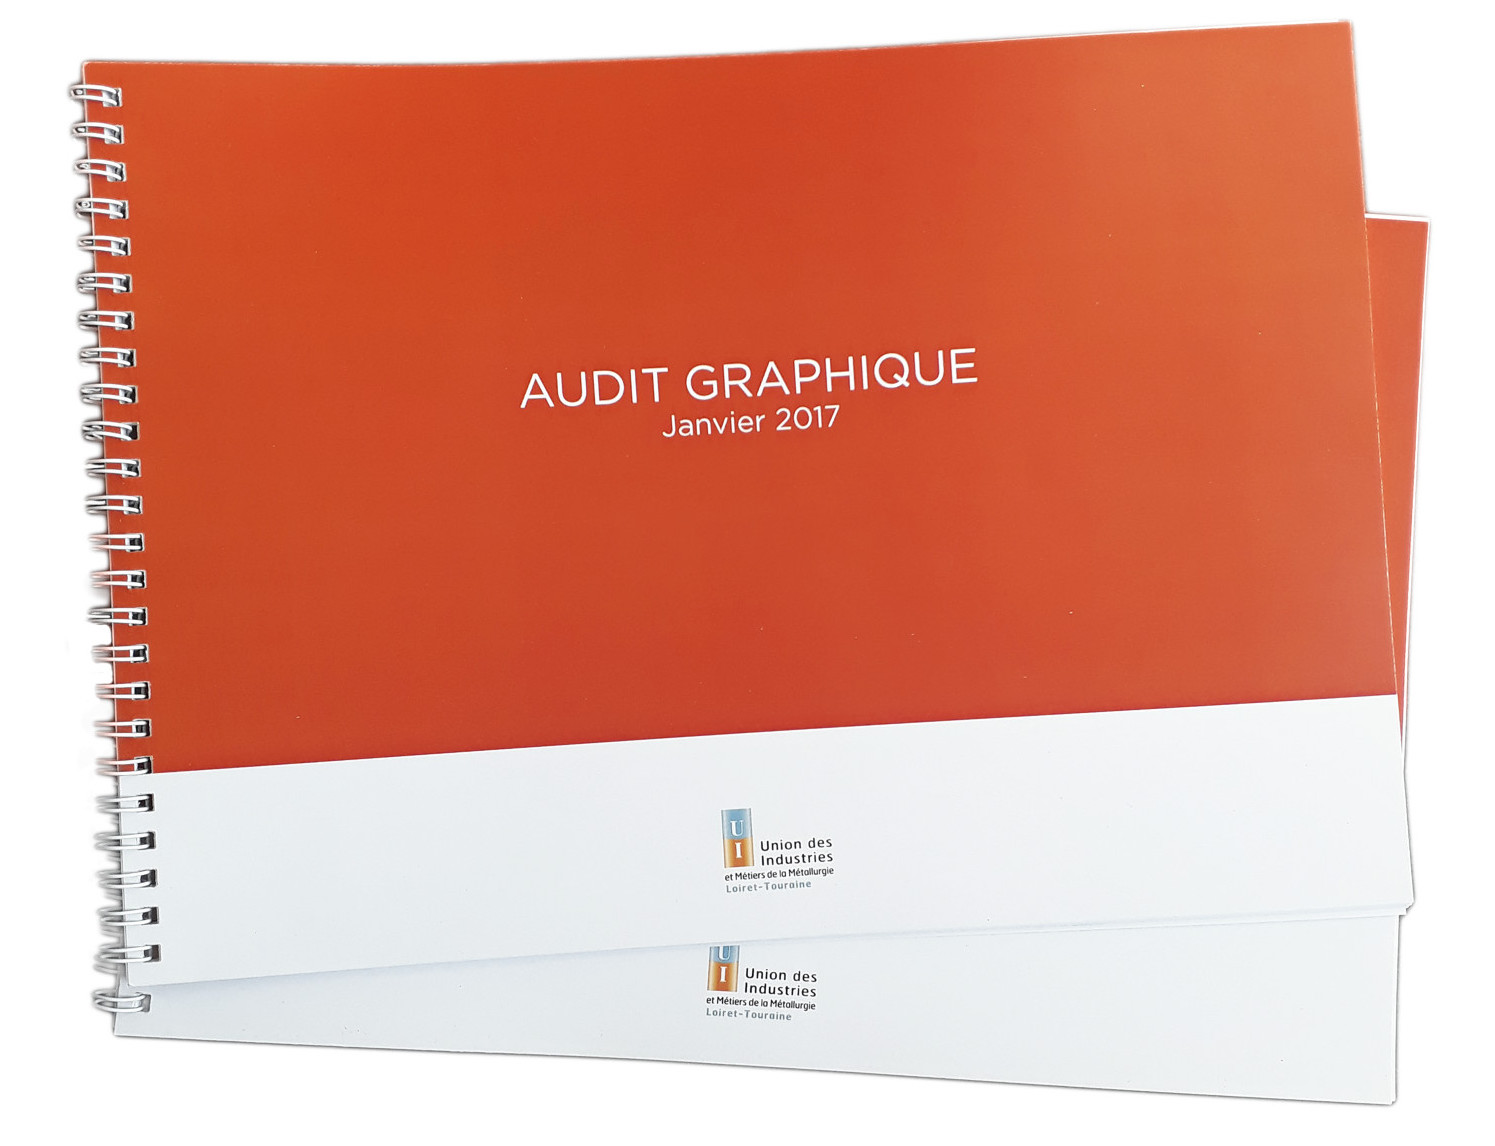 AUDIT GRAPHIQUE UIMM